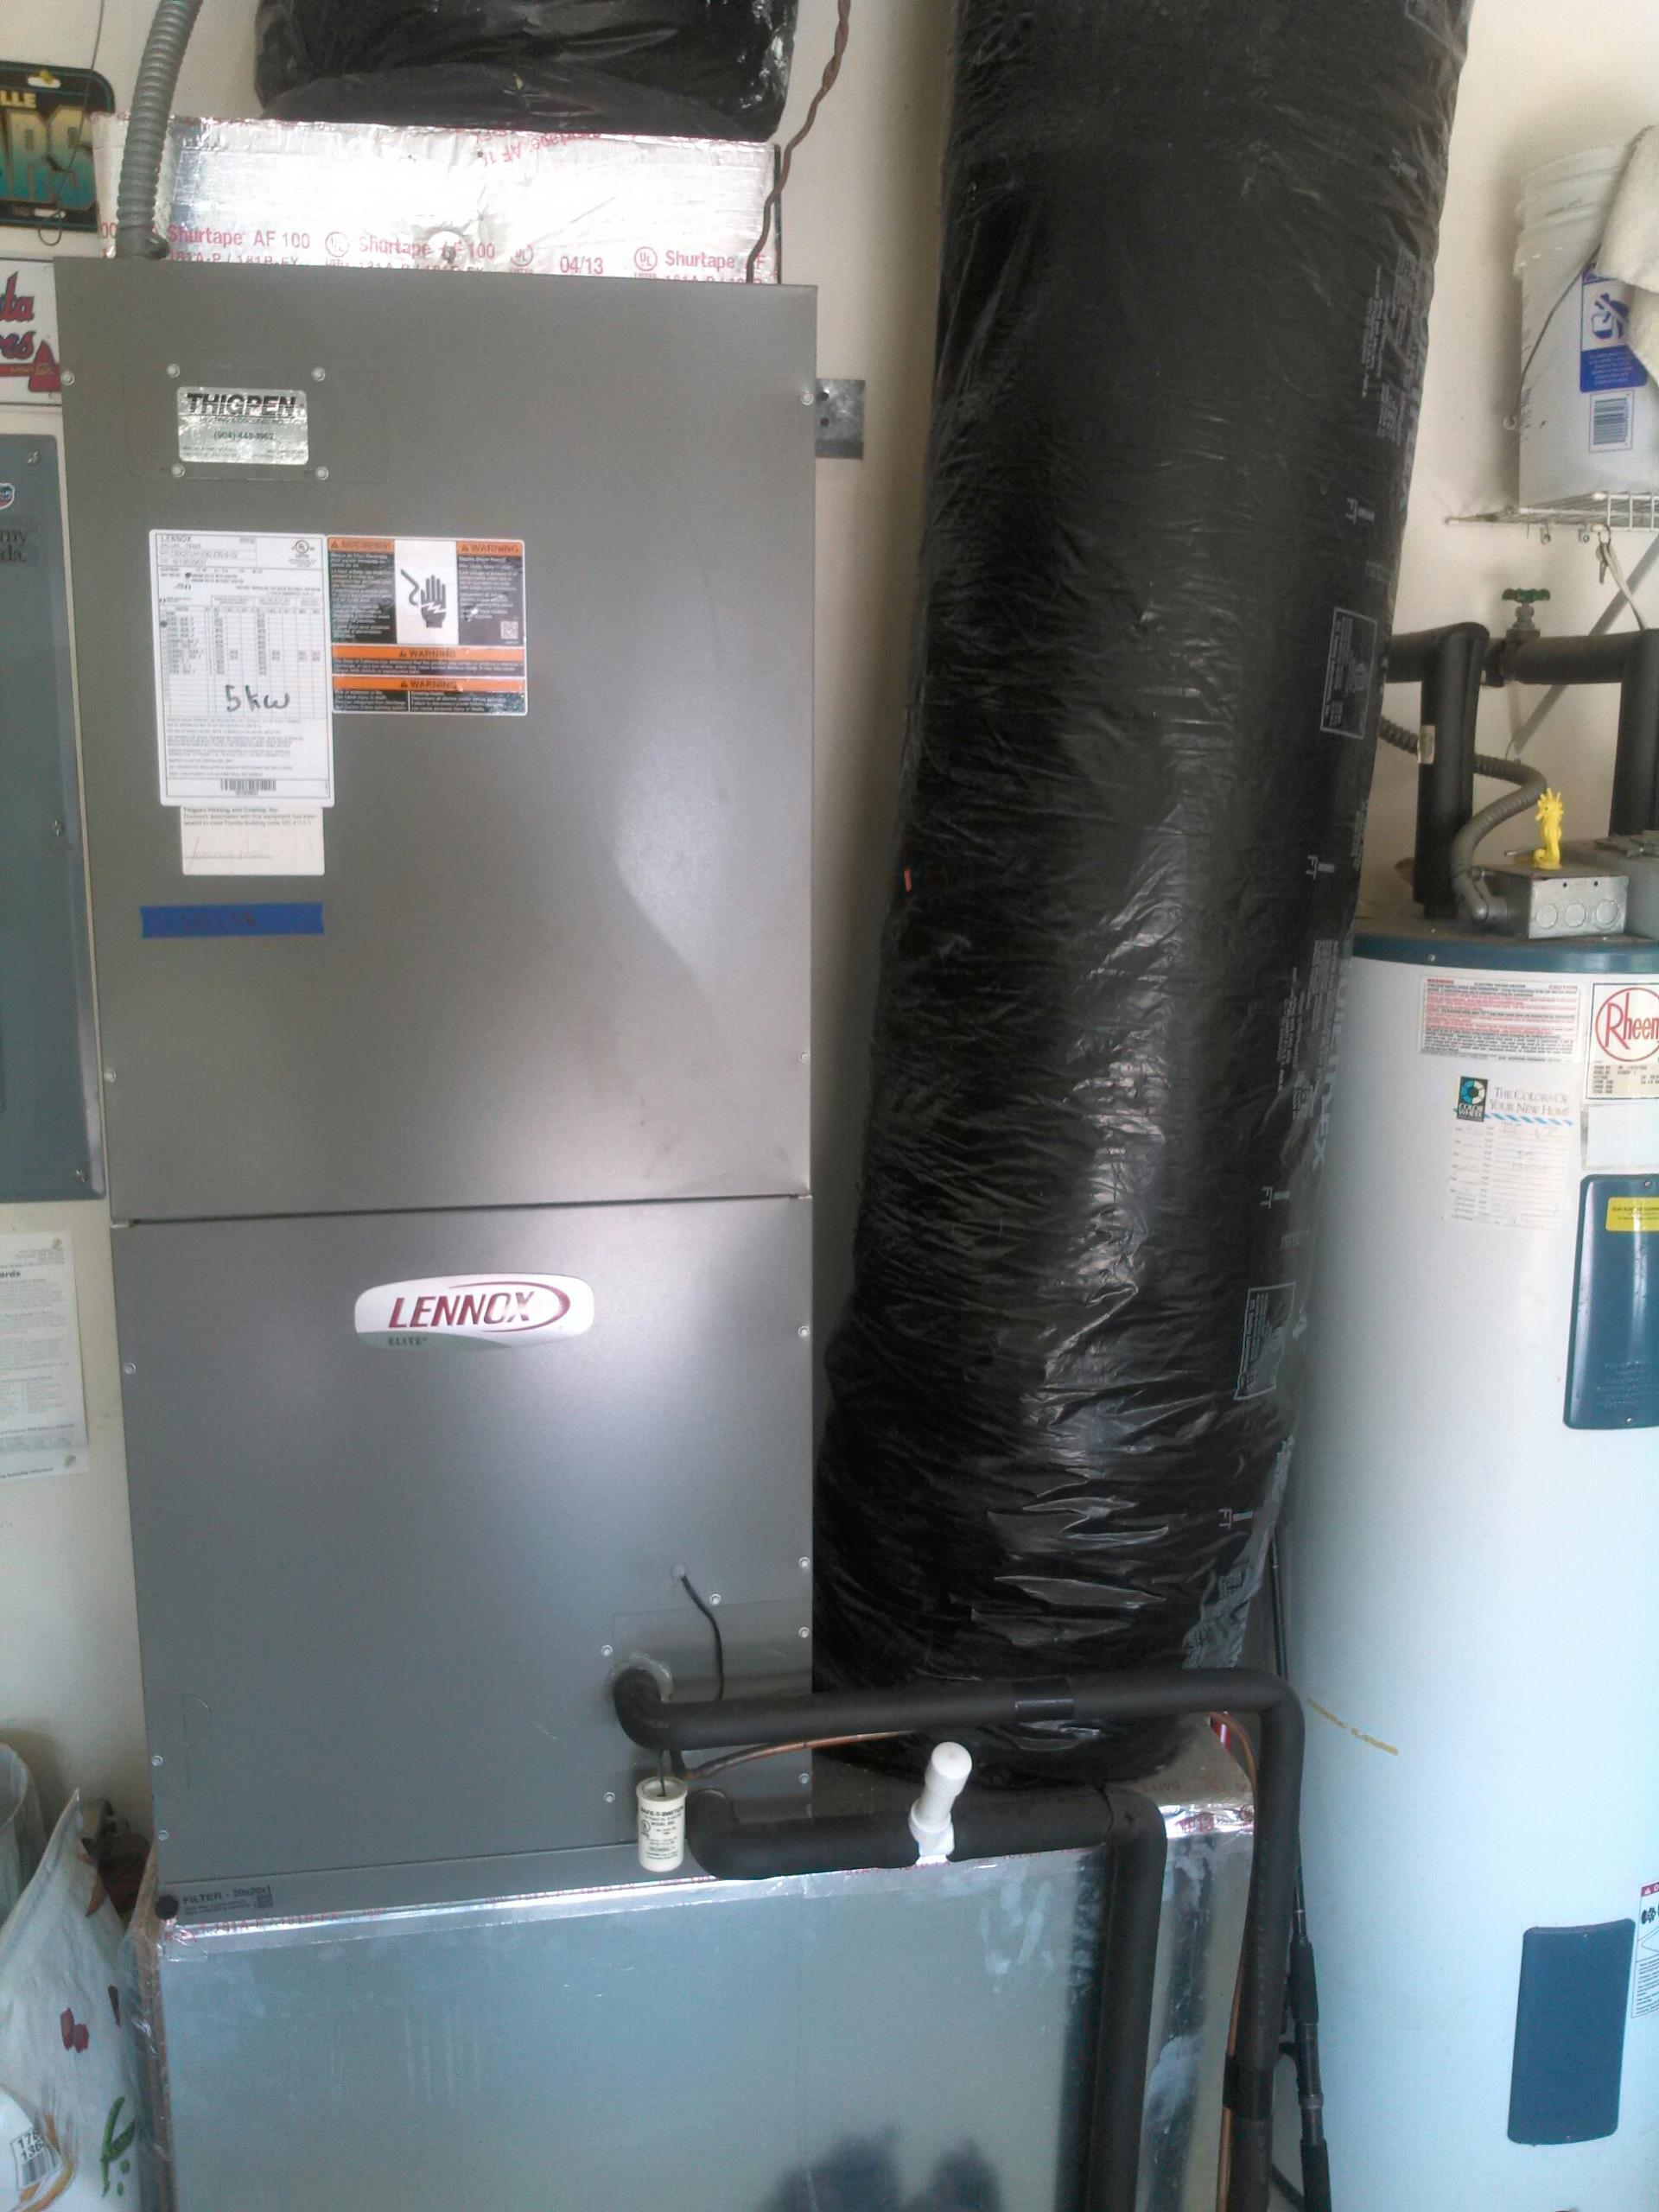 Middleburg, FL - Performed preventative maintenance on one Lennox unit. Cleaned coils, check amp draw on fan motors and compressor. Cleaned drainline with shop vac. Heat strips working fine, filter is good. Defrost cycle operational.